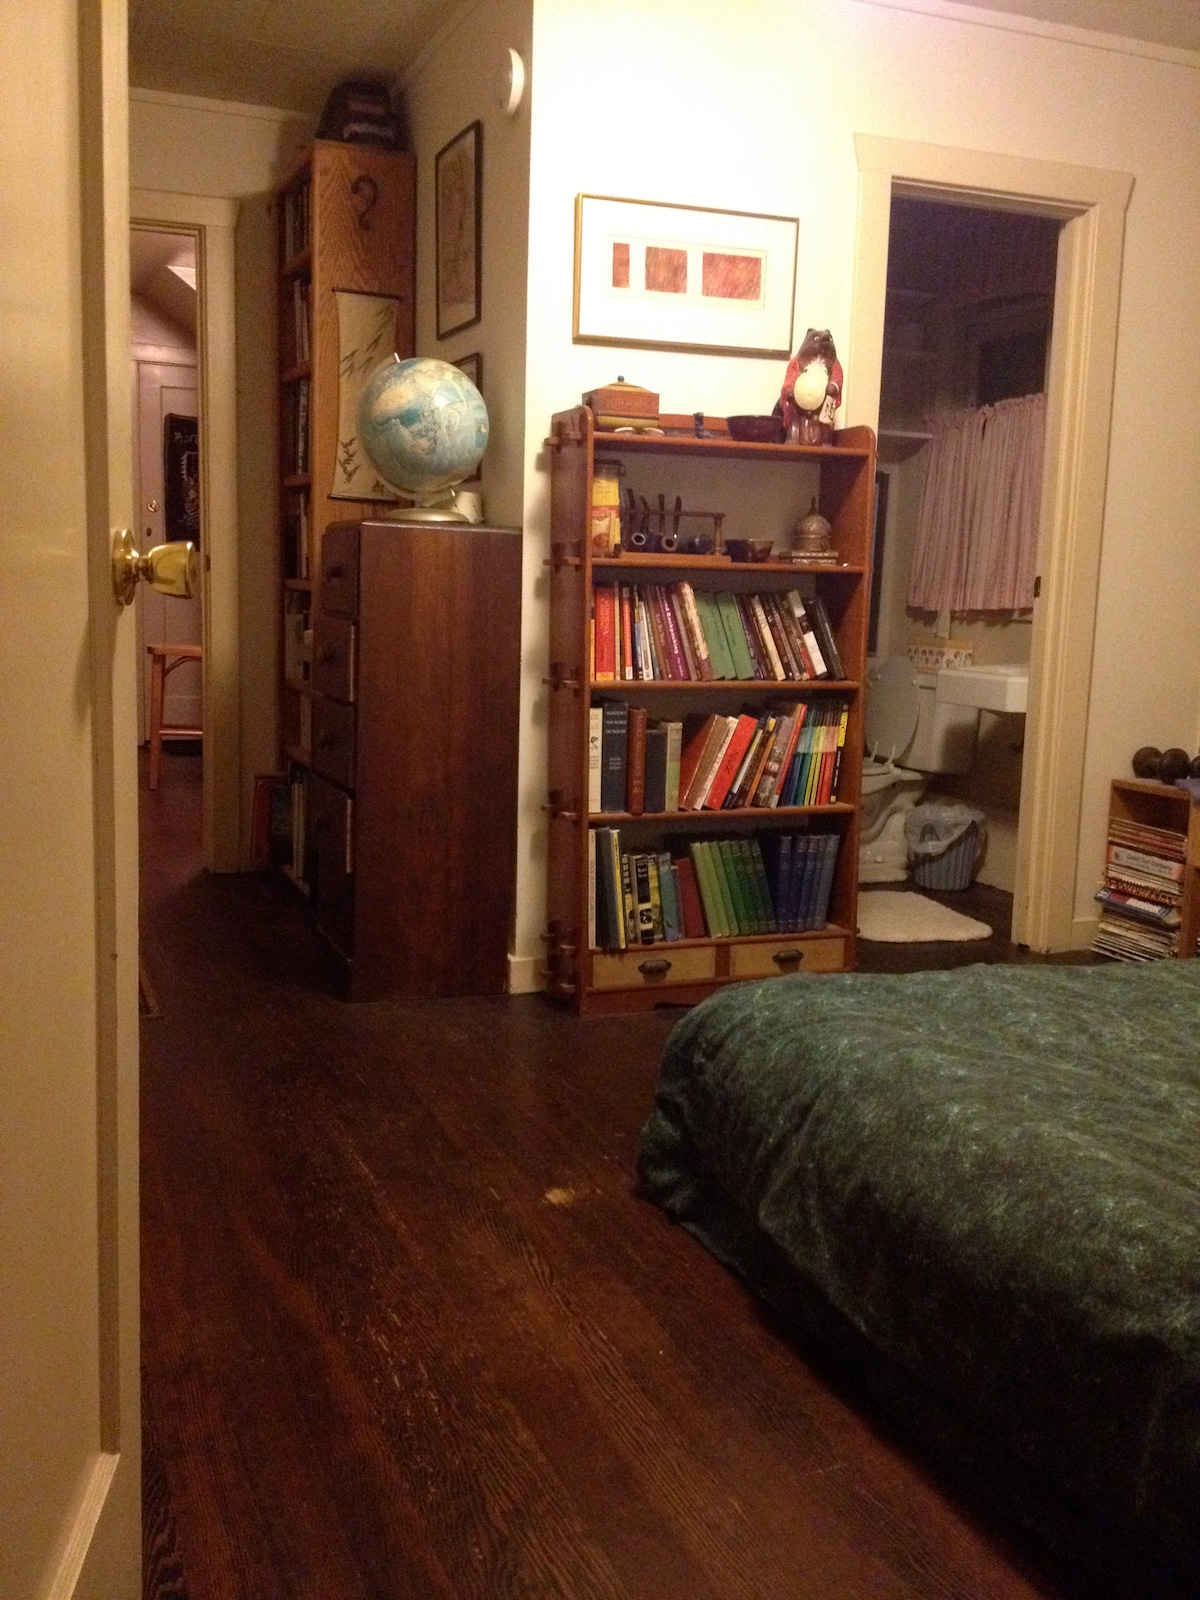 Pass through my tidy bedroom to get to the bath or kitchen...